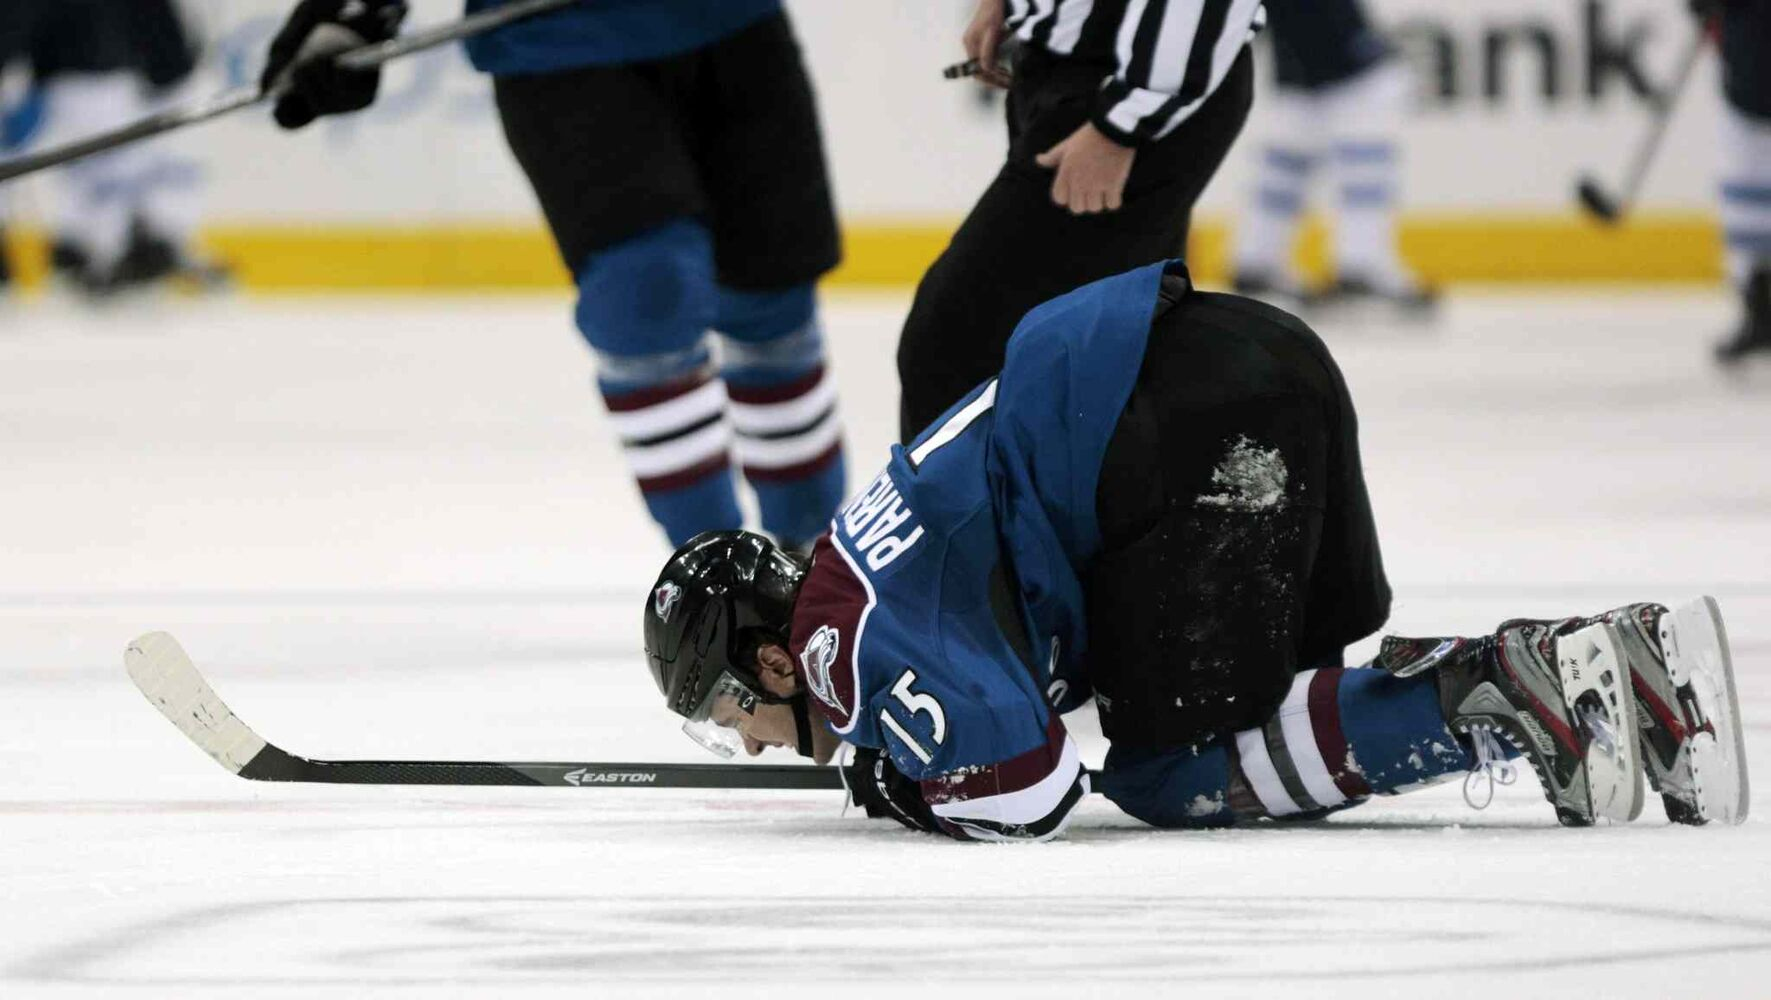 Colorado Avalanche winger P.A. Parenteau kneels on the ice after after getting hurt during the second period. He left the game and did not return. (Joe Mahoney / The Associated Press)